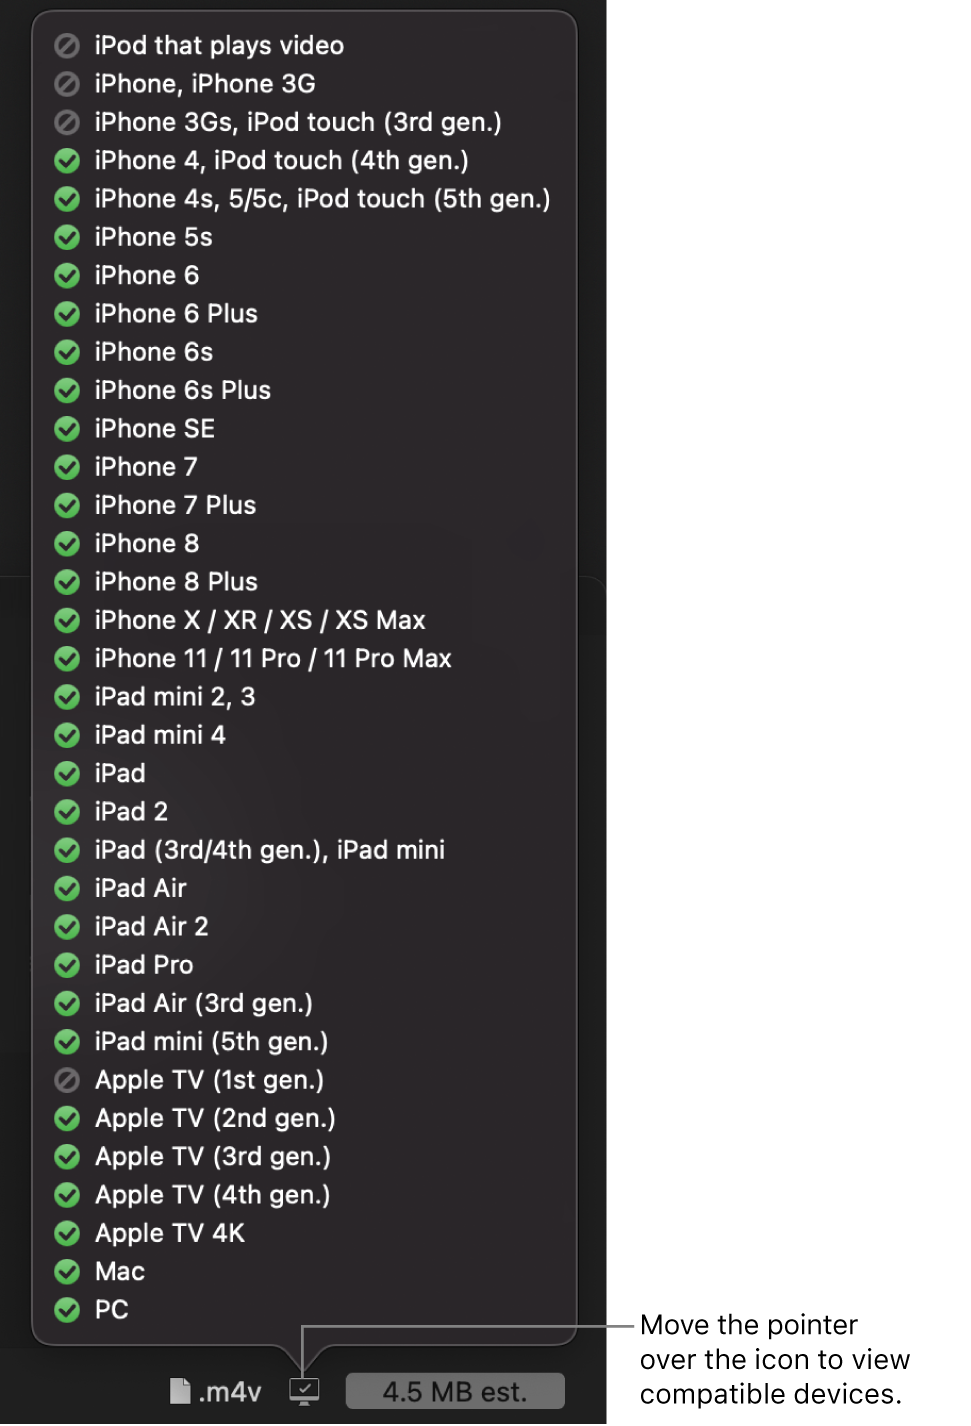 Compatible devices list in the Apple Devices share window